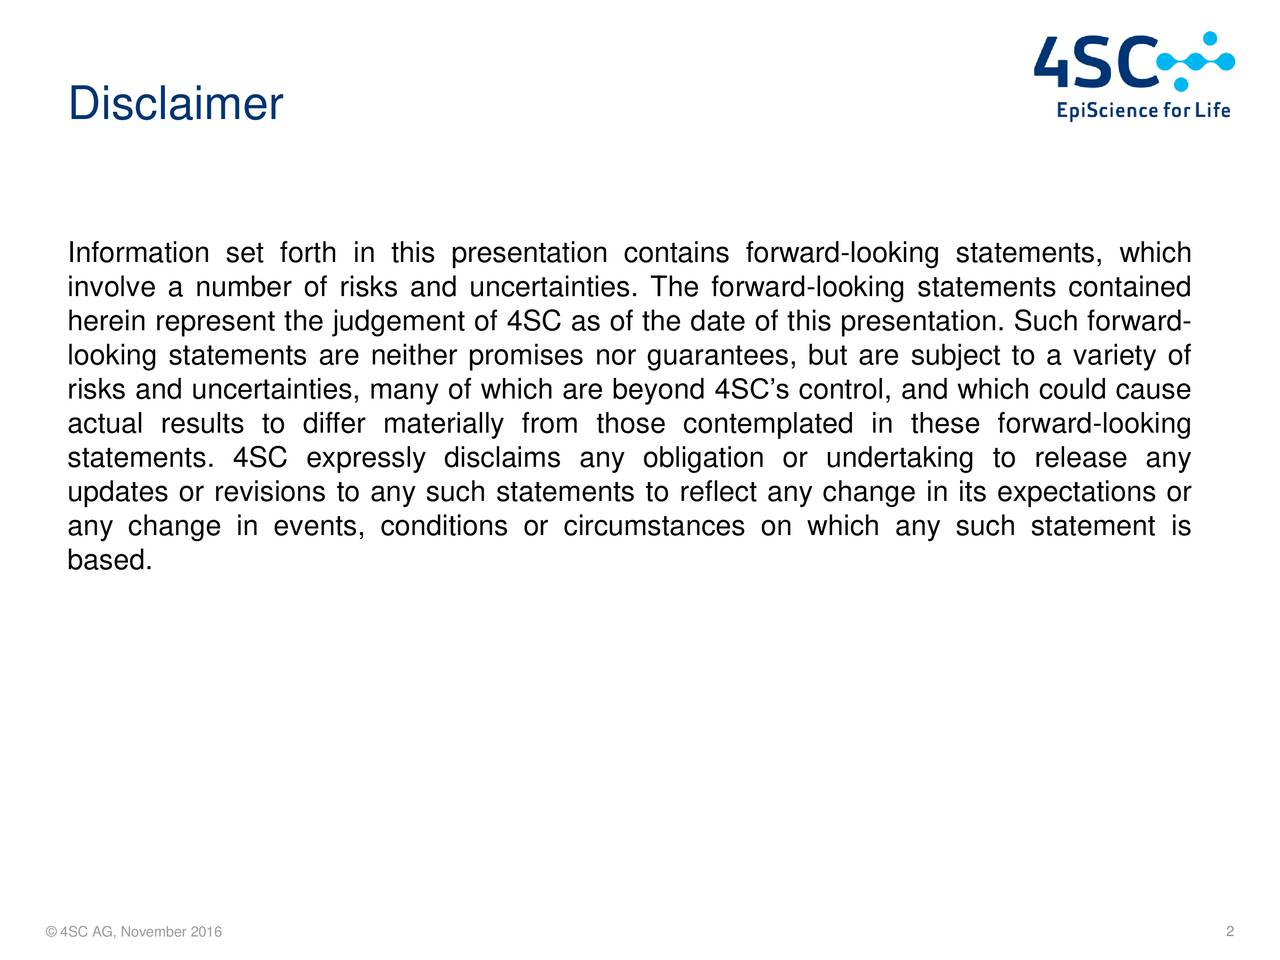 Information set forth in this presentation contains forward-looking statements, which involve a number of risks and uncertainties. The forward-looking statements contained herein represent the judgement of 4SC as of the date of this presentation. Such forward- looking statements are neither promises nor guarantees, but are subject to a variety of risks and uncertainties, many of which are beyond 4SCs control, and which could cause actual results to differ materially from those contemplated in these forward-looking statements. 4SC expressly disclaims any obligation or undertaking to release any updates or revisions to any such statements to reflect any change in its expectations or any change in events, conditions or circumstances on which any such statement is based. 4SC AG, November 2016 2